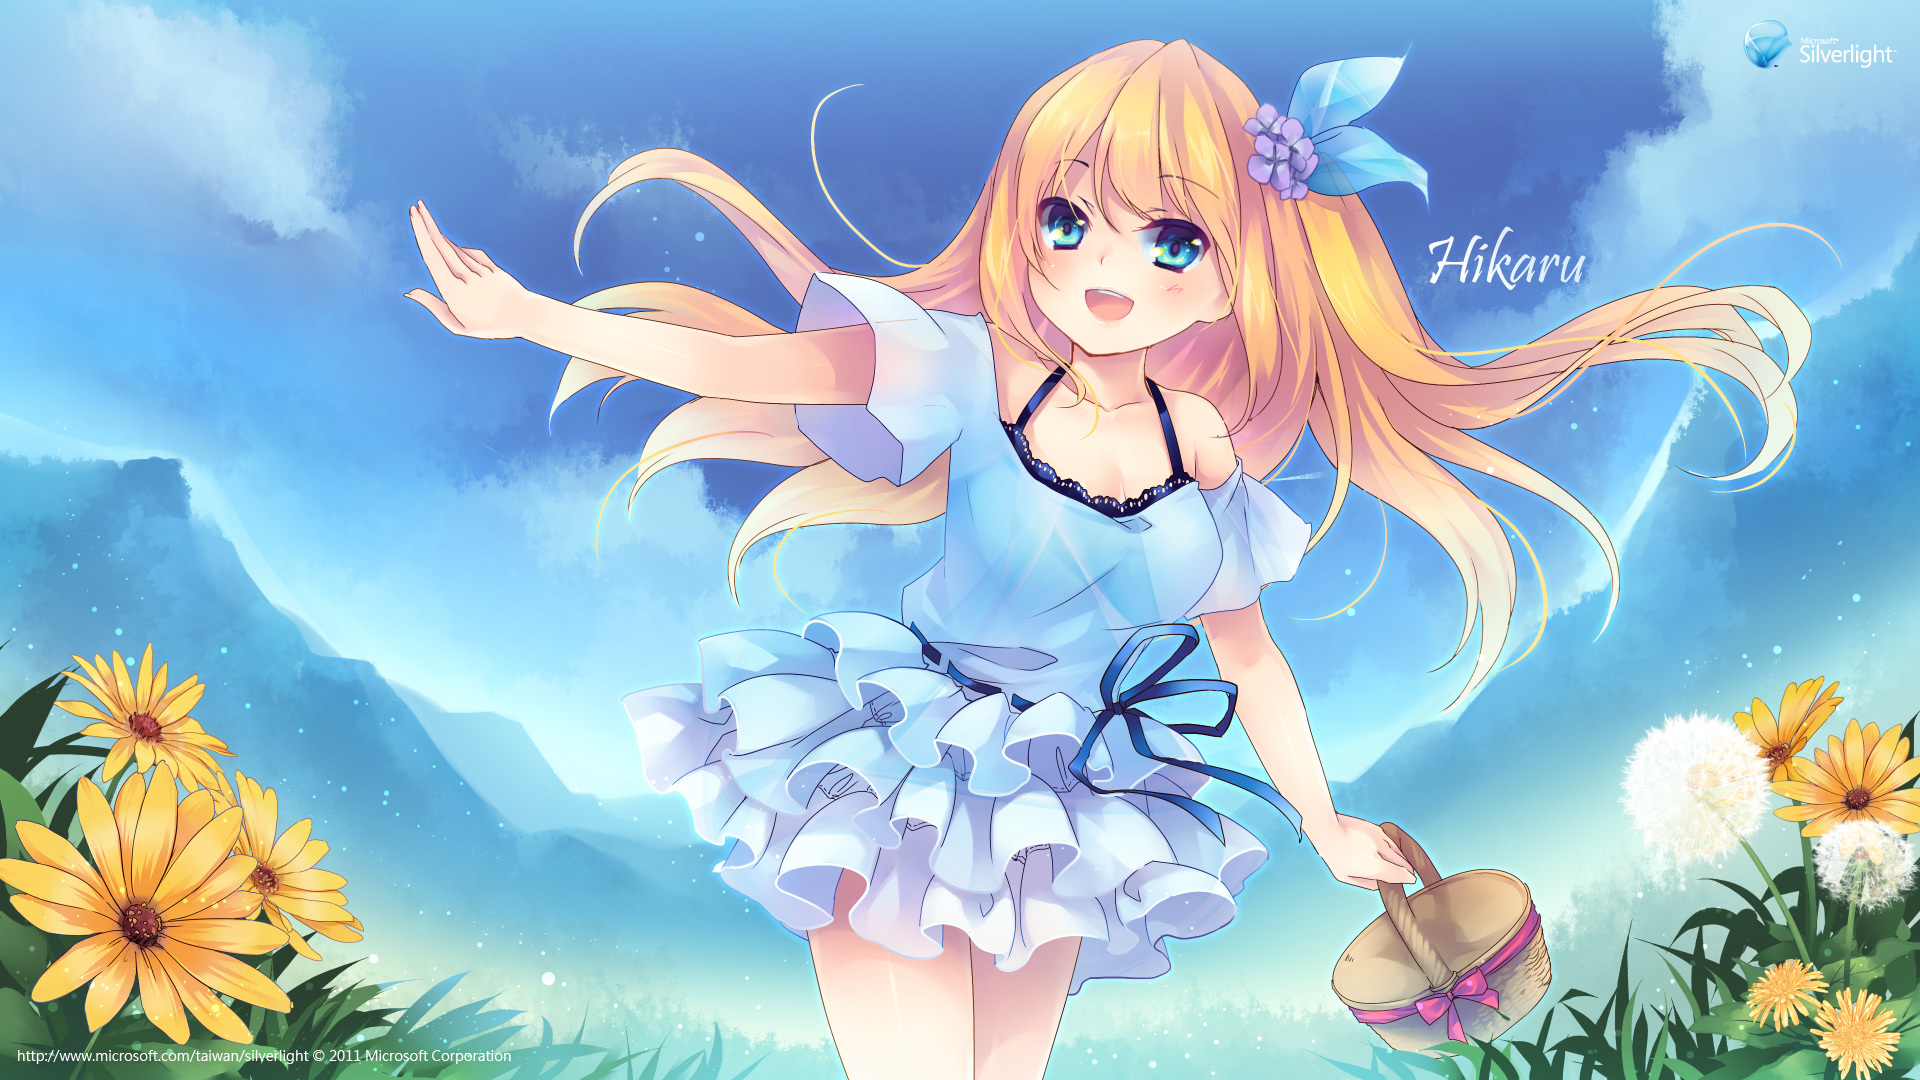 Flowers clouds sky hot Beauty cute Anime HD Wallpaper